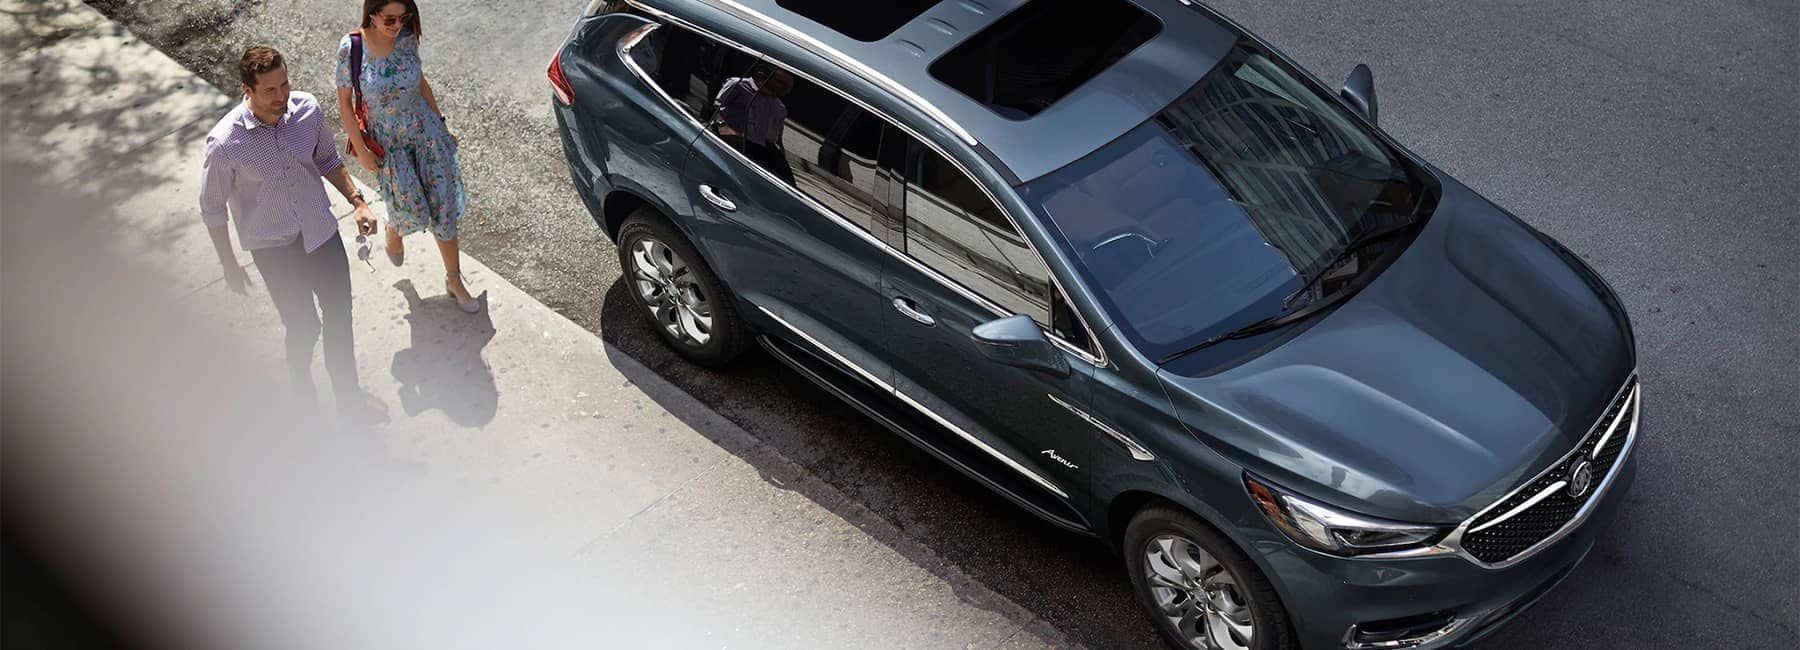 2020 Buick Enclave mid-size luxury SUV MOV Gallery birds eye view image